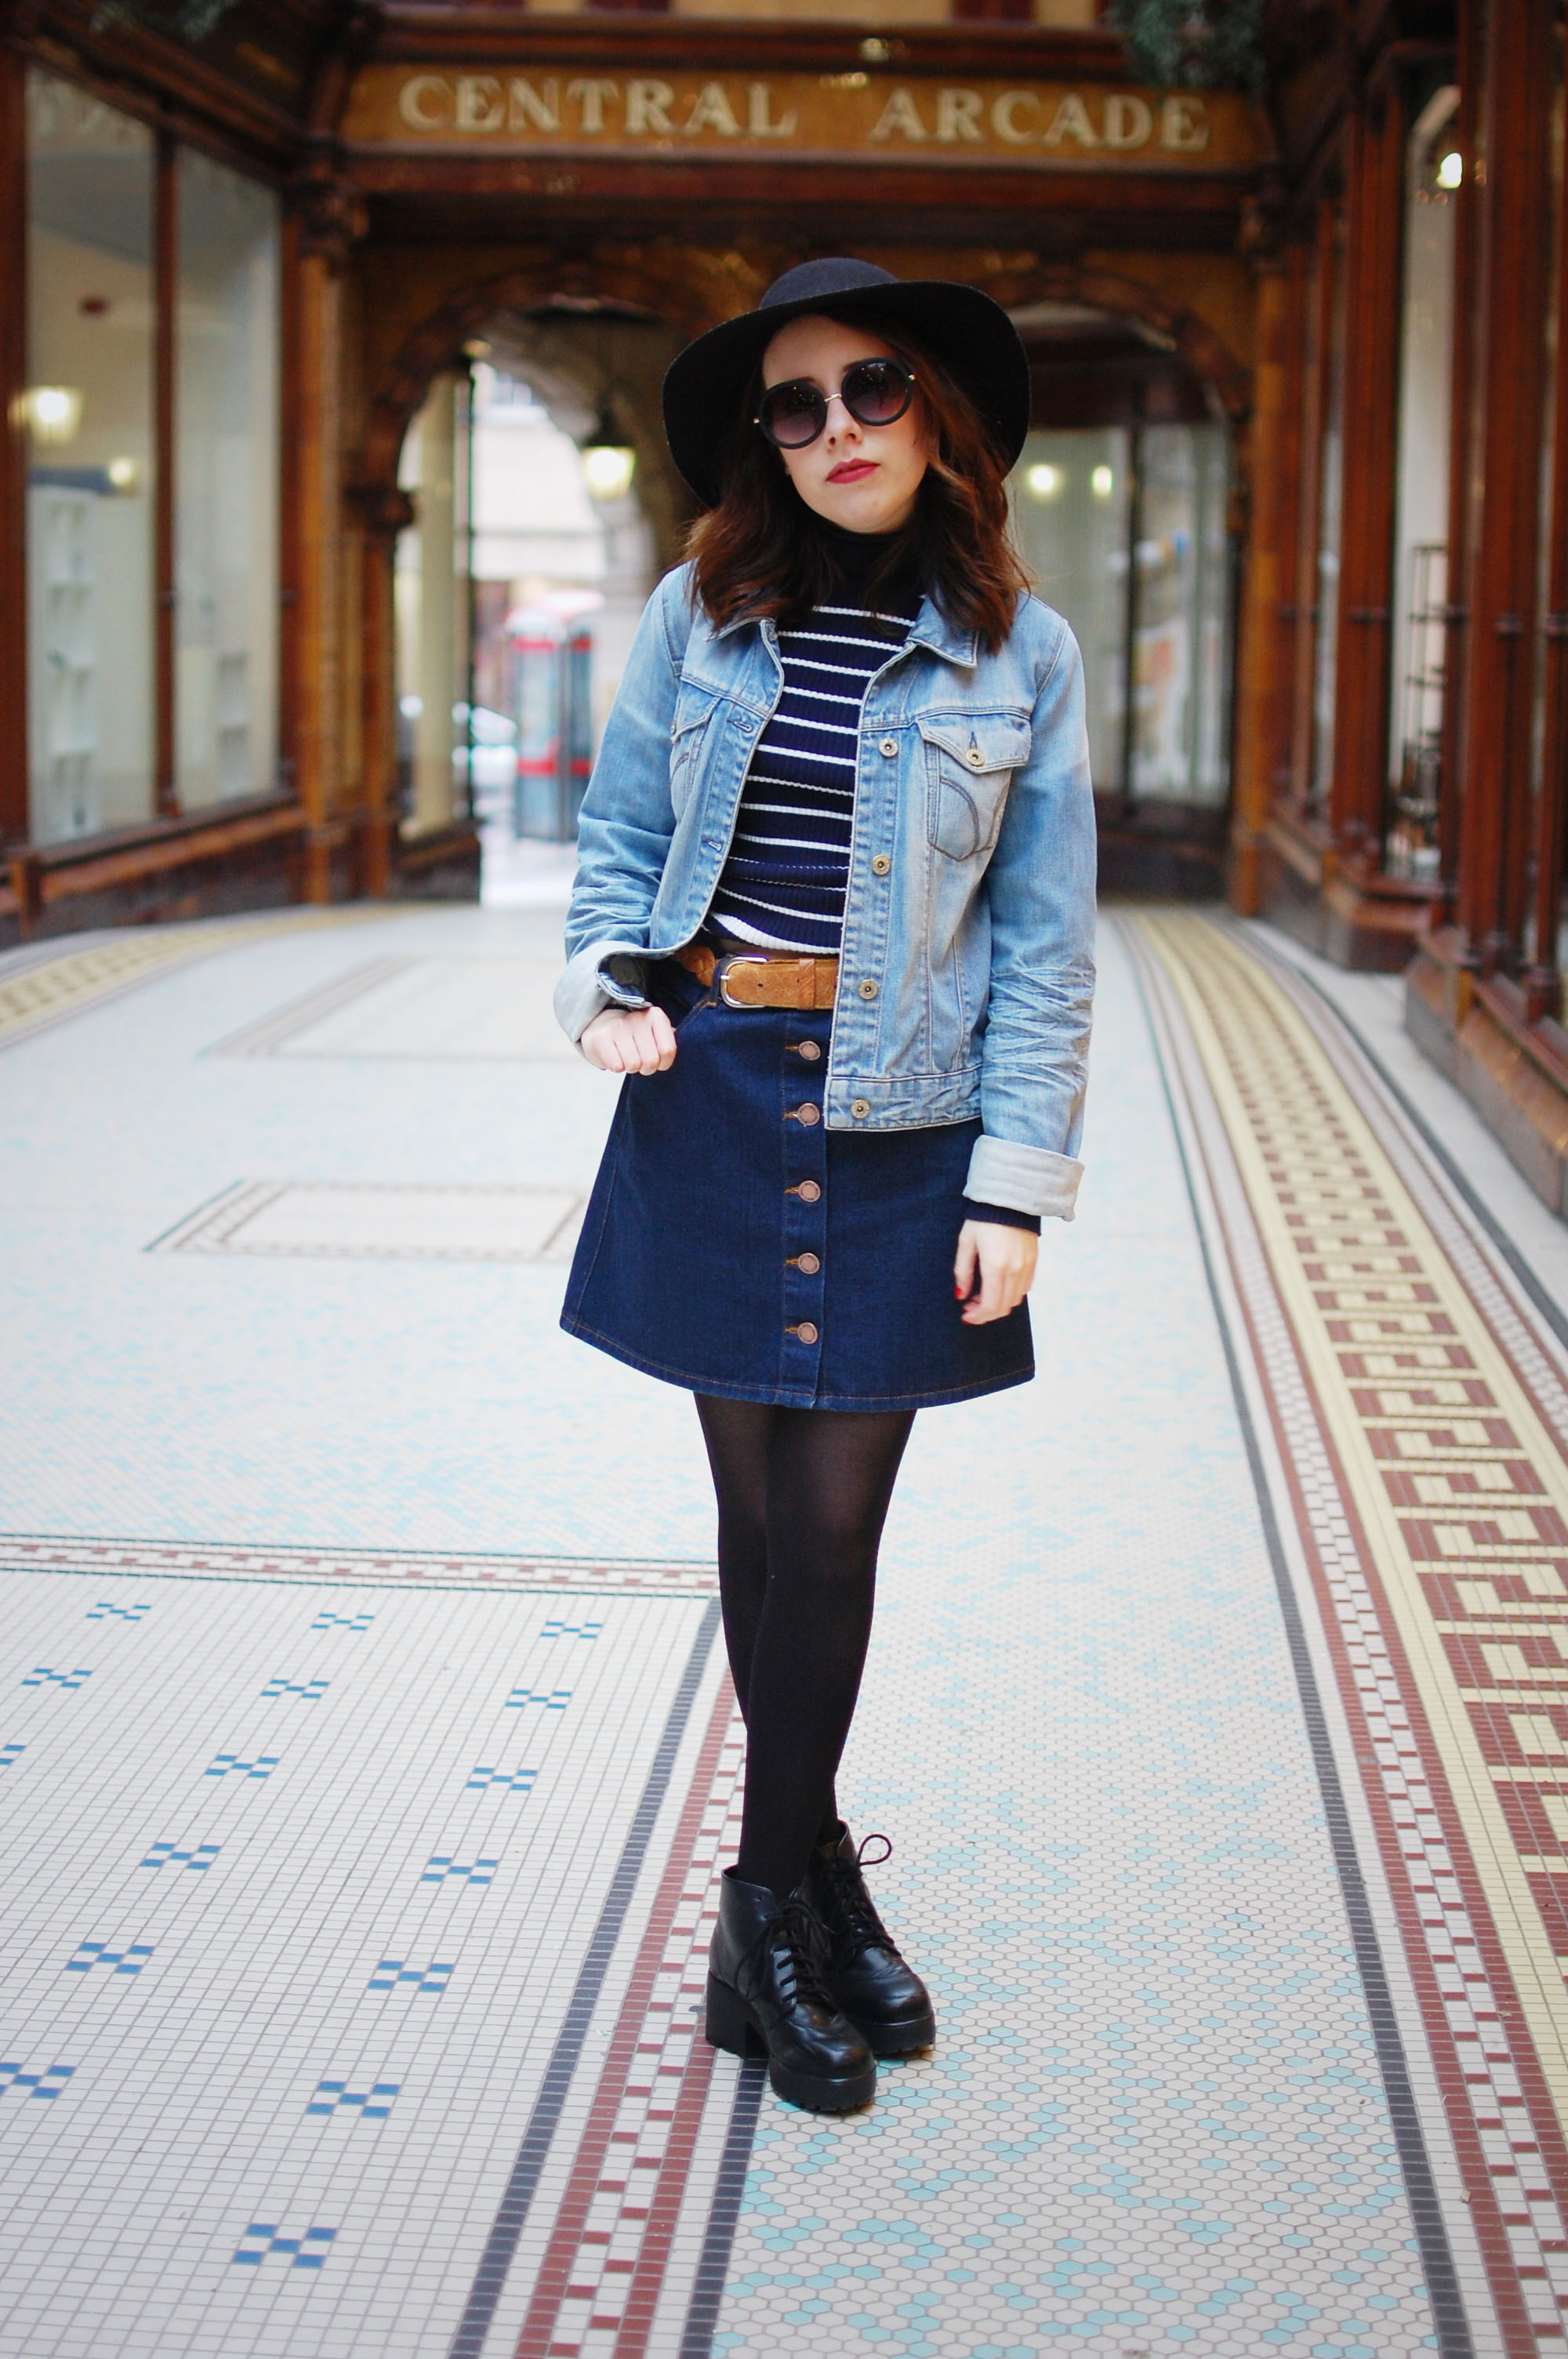 Denim skirt outfit 2015 – Modern skirts blog for you